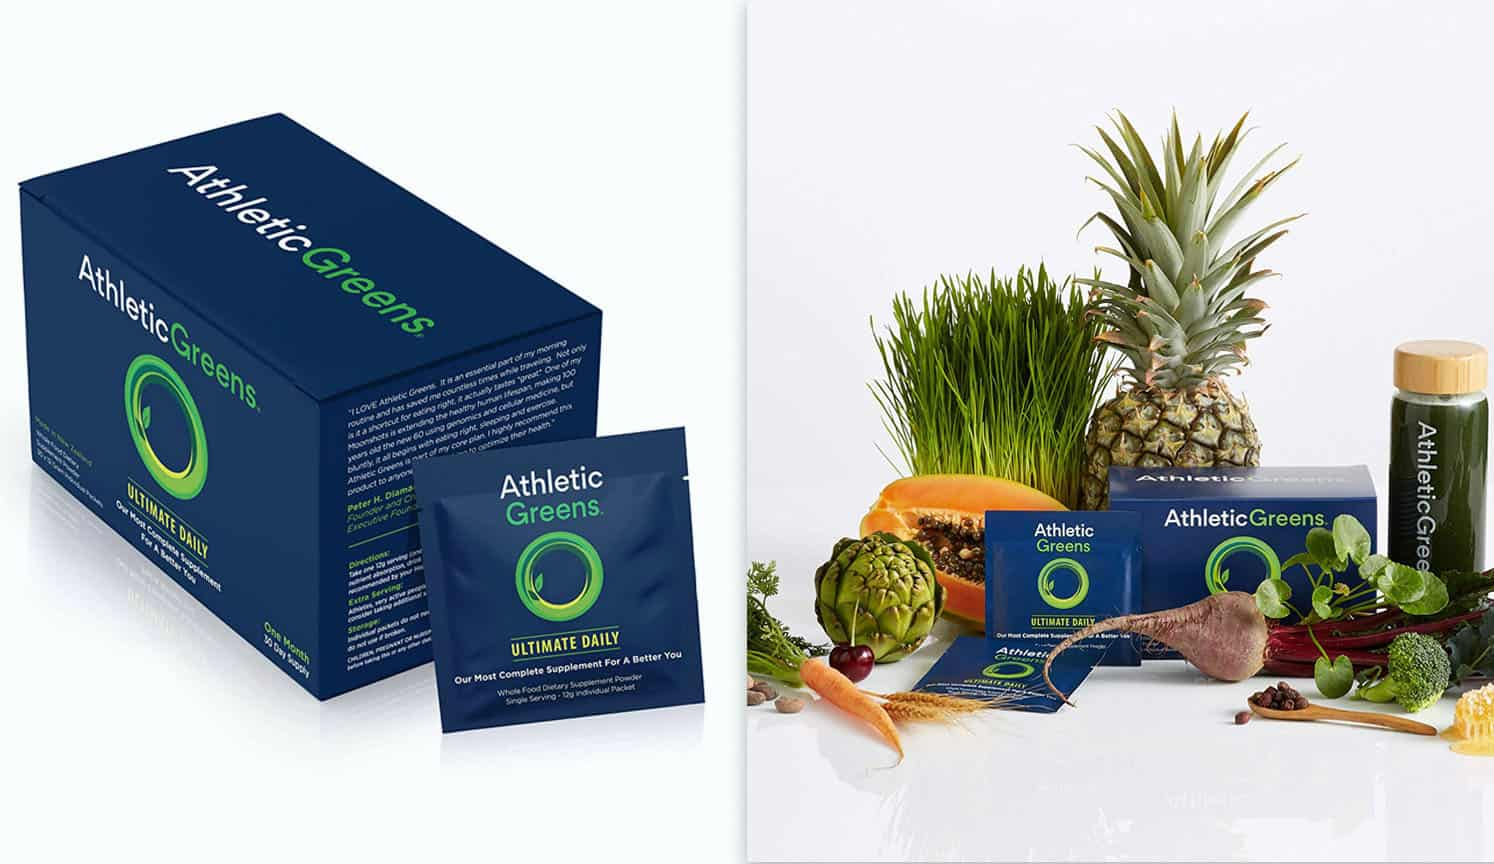 Green Superfood Powder as the second related product of the Best Greens Supplement